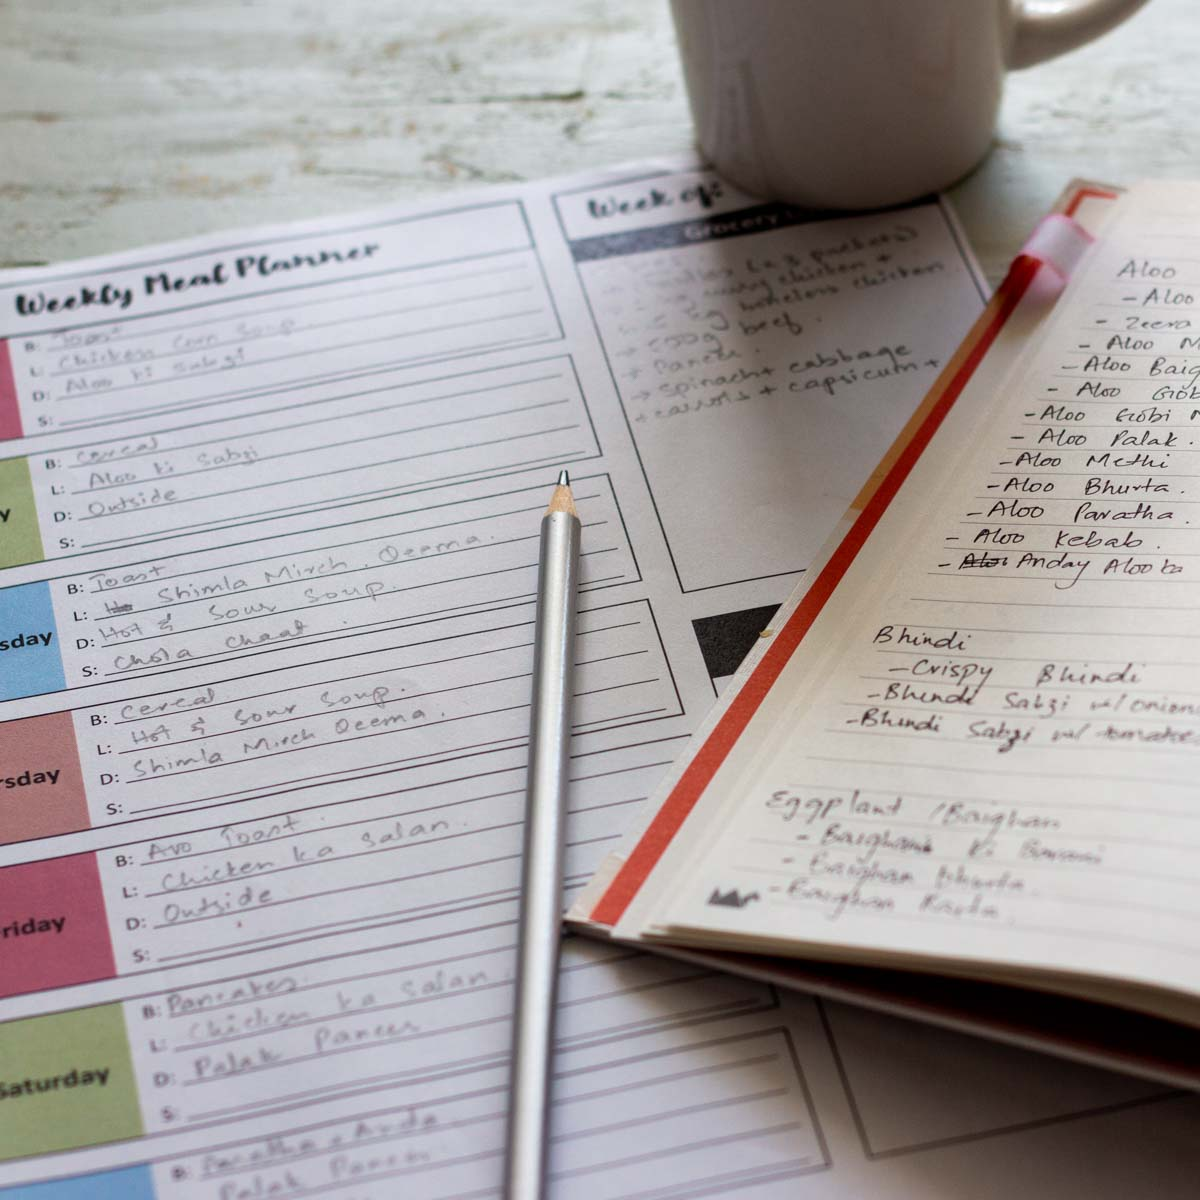 A printed weekly meal plan with a pencil on the plan. Next to the plan is a corner of a diary listing vegetarian dishes. On the top of the diary is a corner shot of a cup of tea.